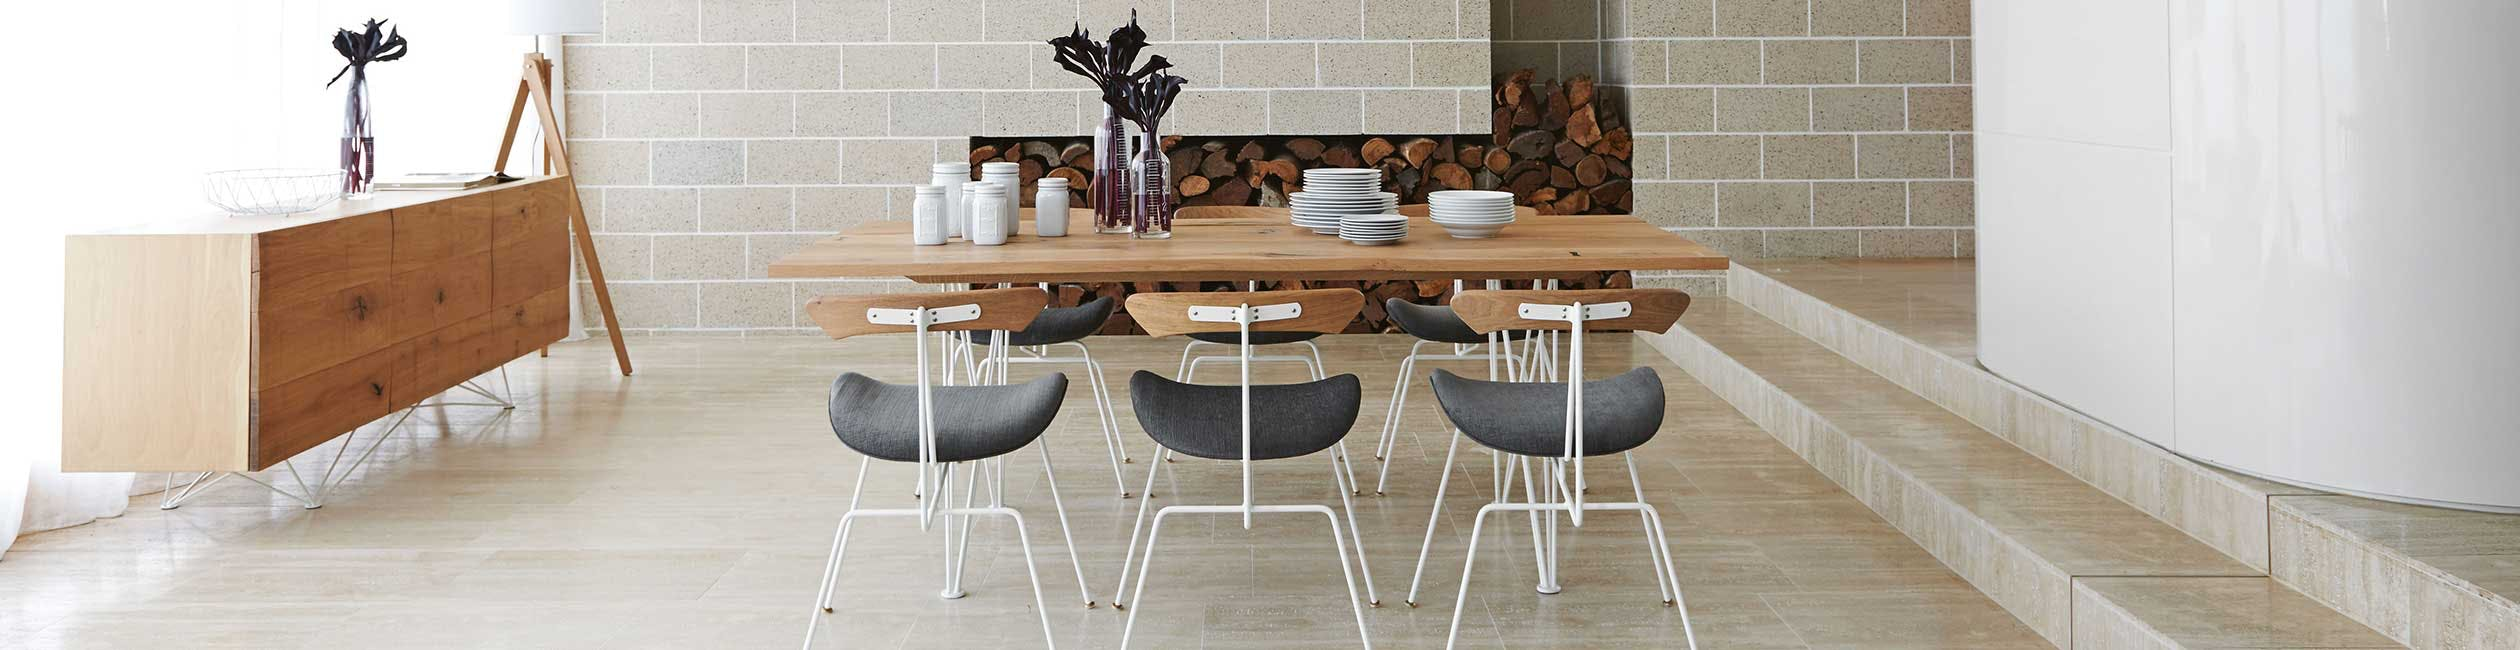 Kitchen Stools Sydney Furniture Furniture Dining Chairs Dining Tables Stools Bar Stool Domayne